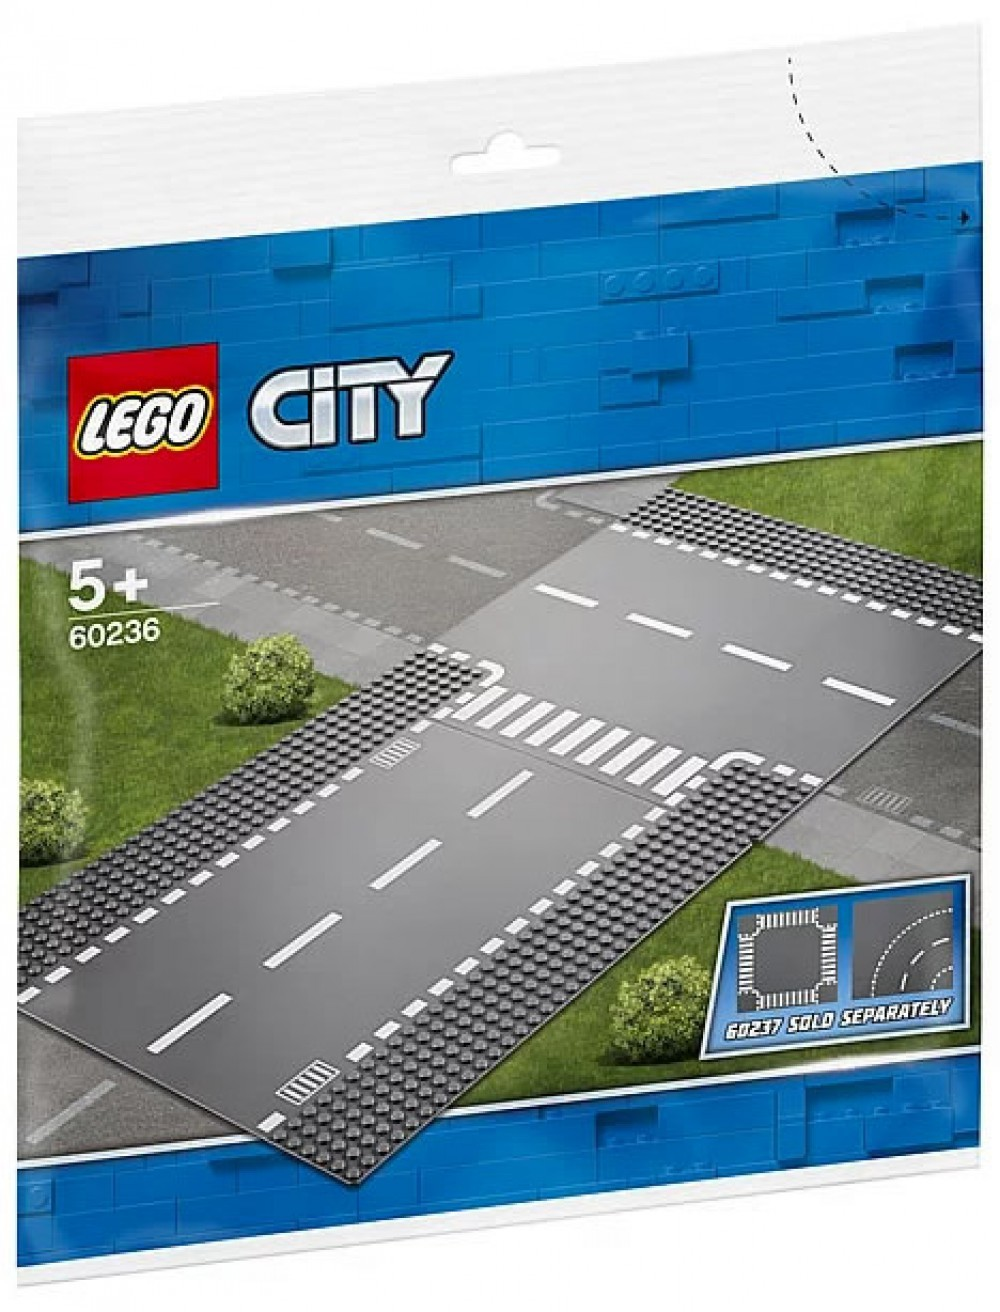 Nouveau LEGO City 60236 Straight & T-Junction 2019